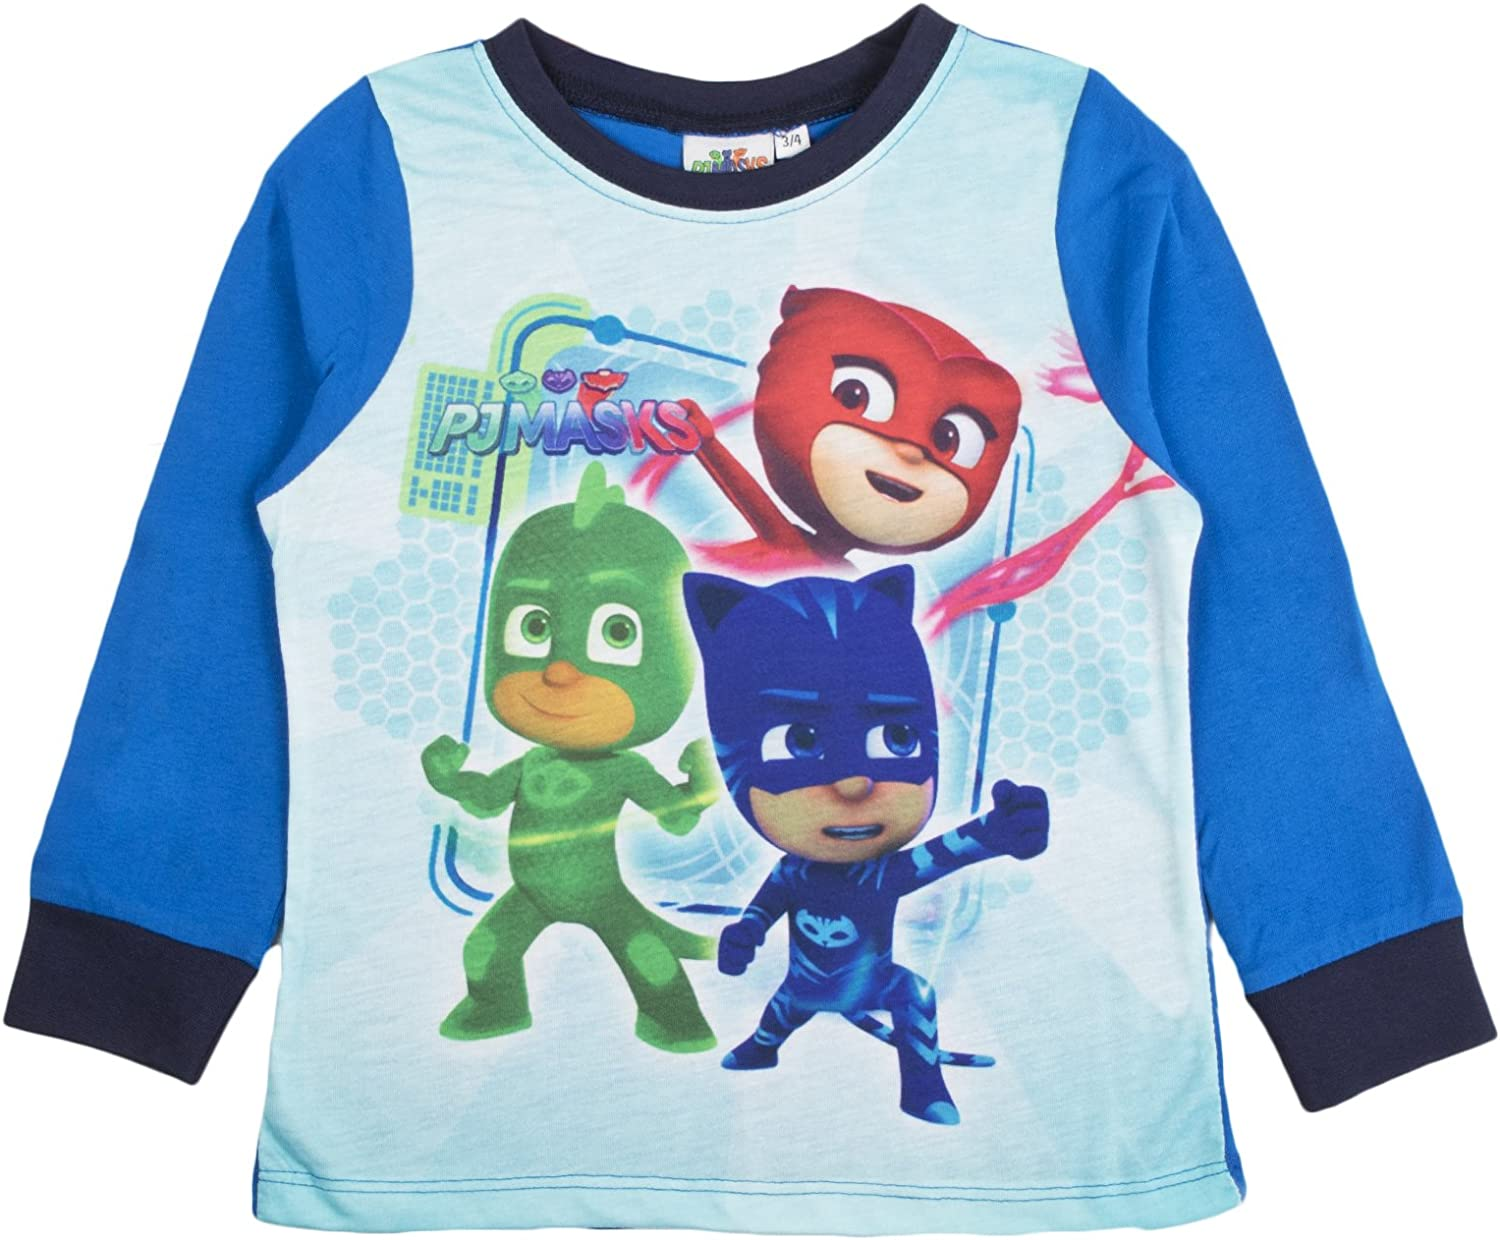 Official Boys PJ Masks Ready For Action Pyjamas PJMASKS  Size 18 Mths 5 Years